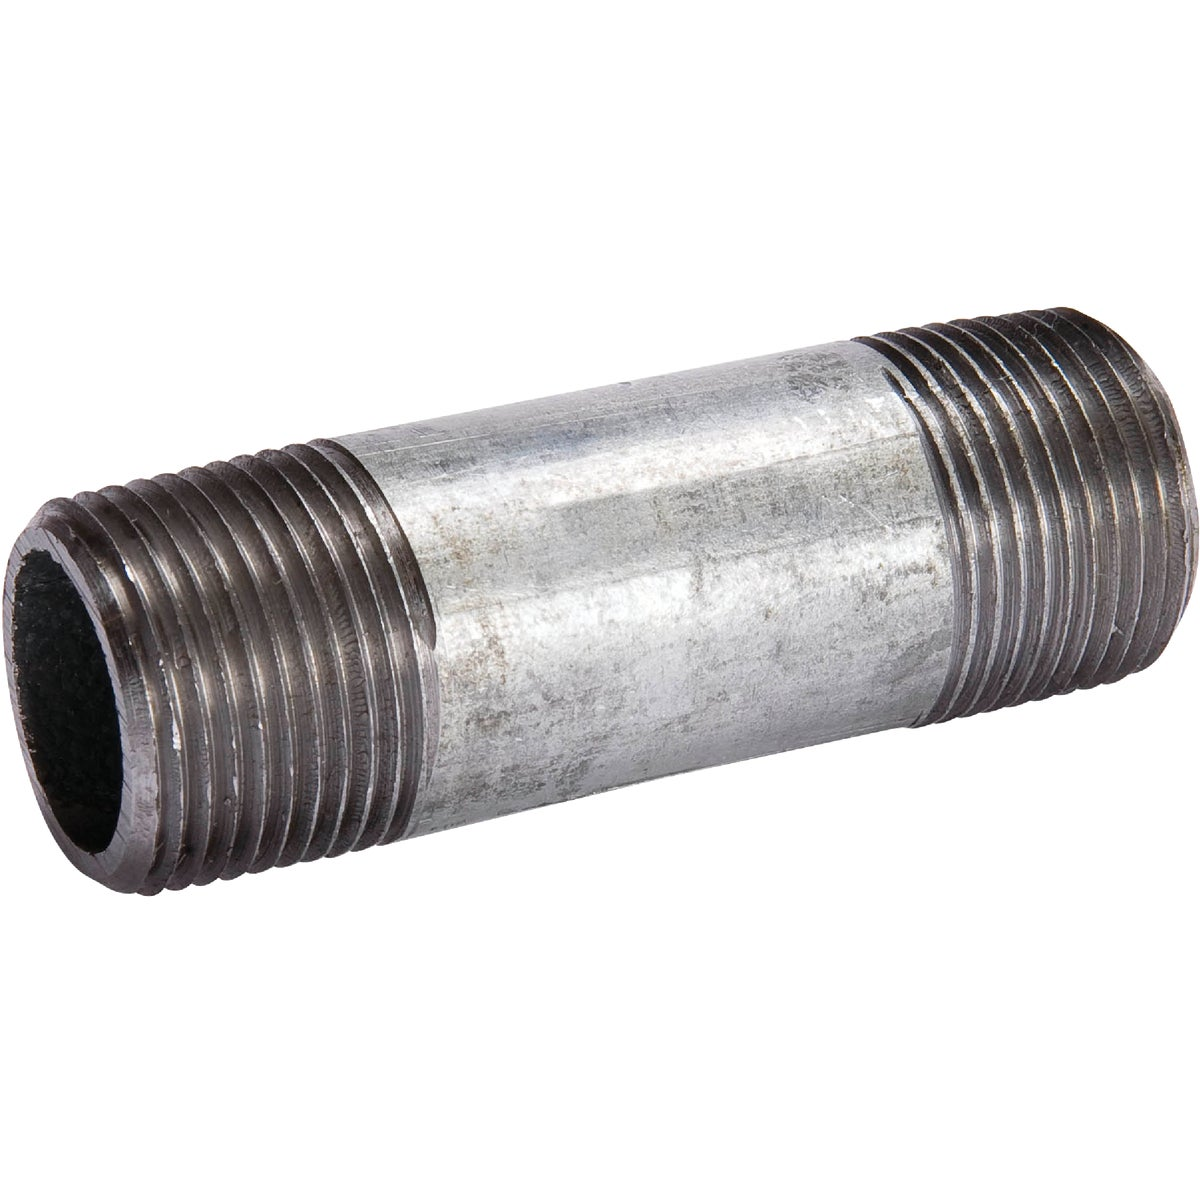 1/2X3-1/2 GALV NIPPLE - 10405 by Southland Pipe Nippl